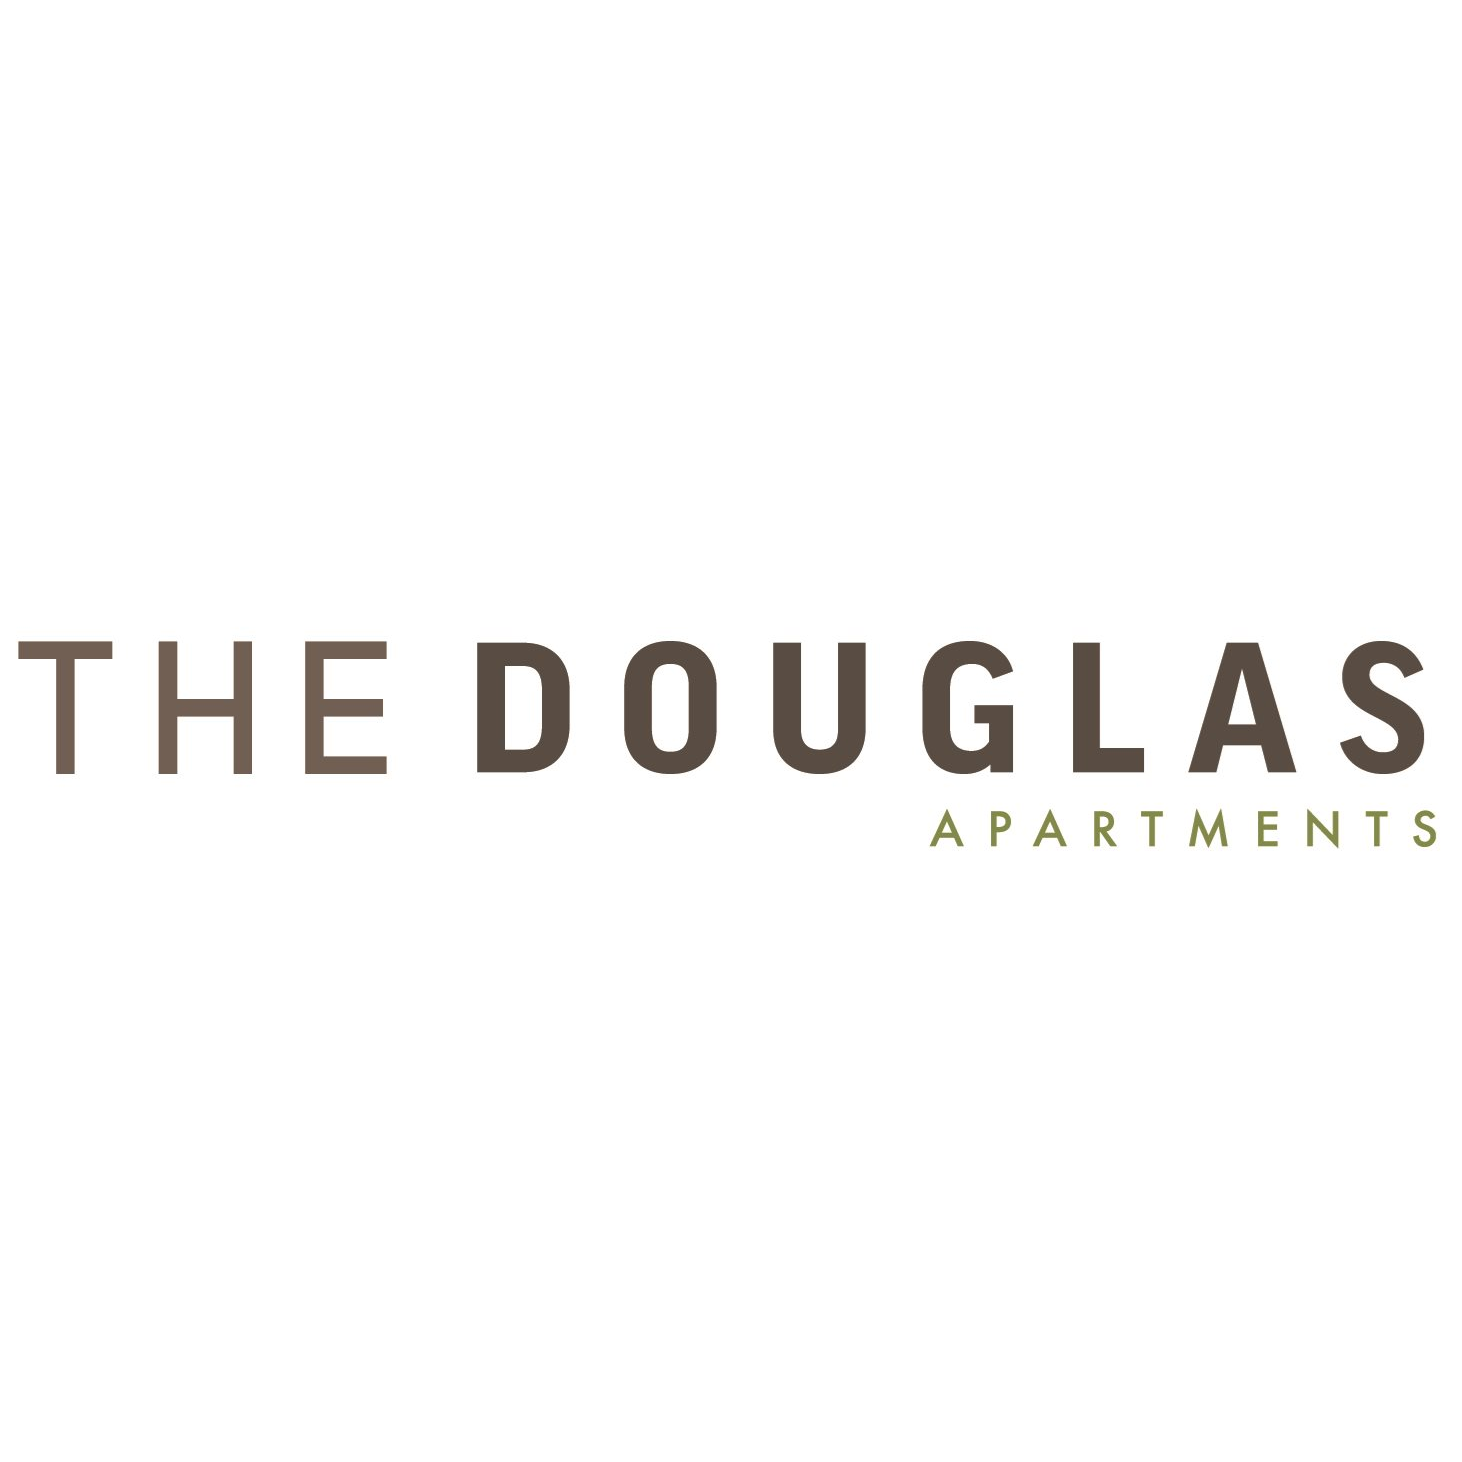 The Douglas Apartments